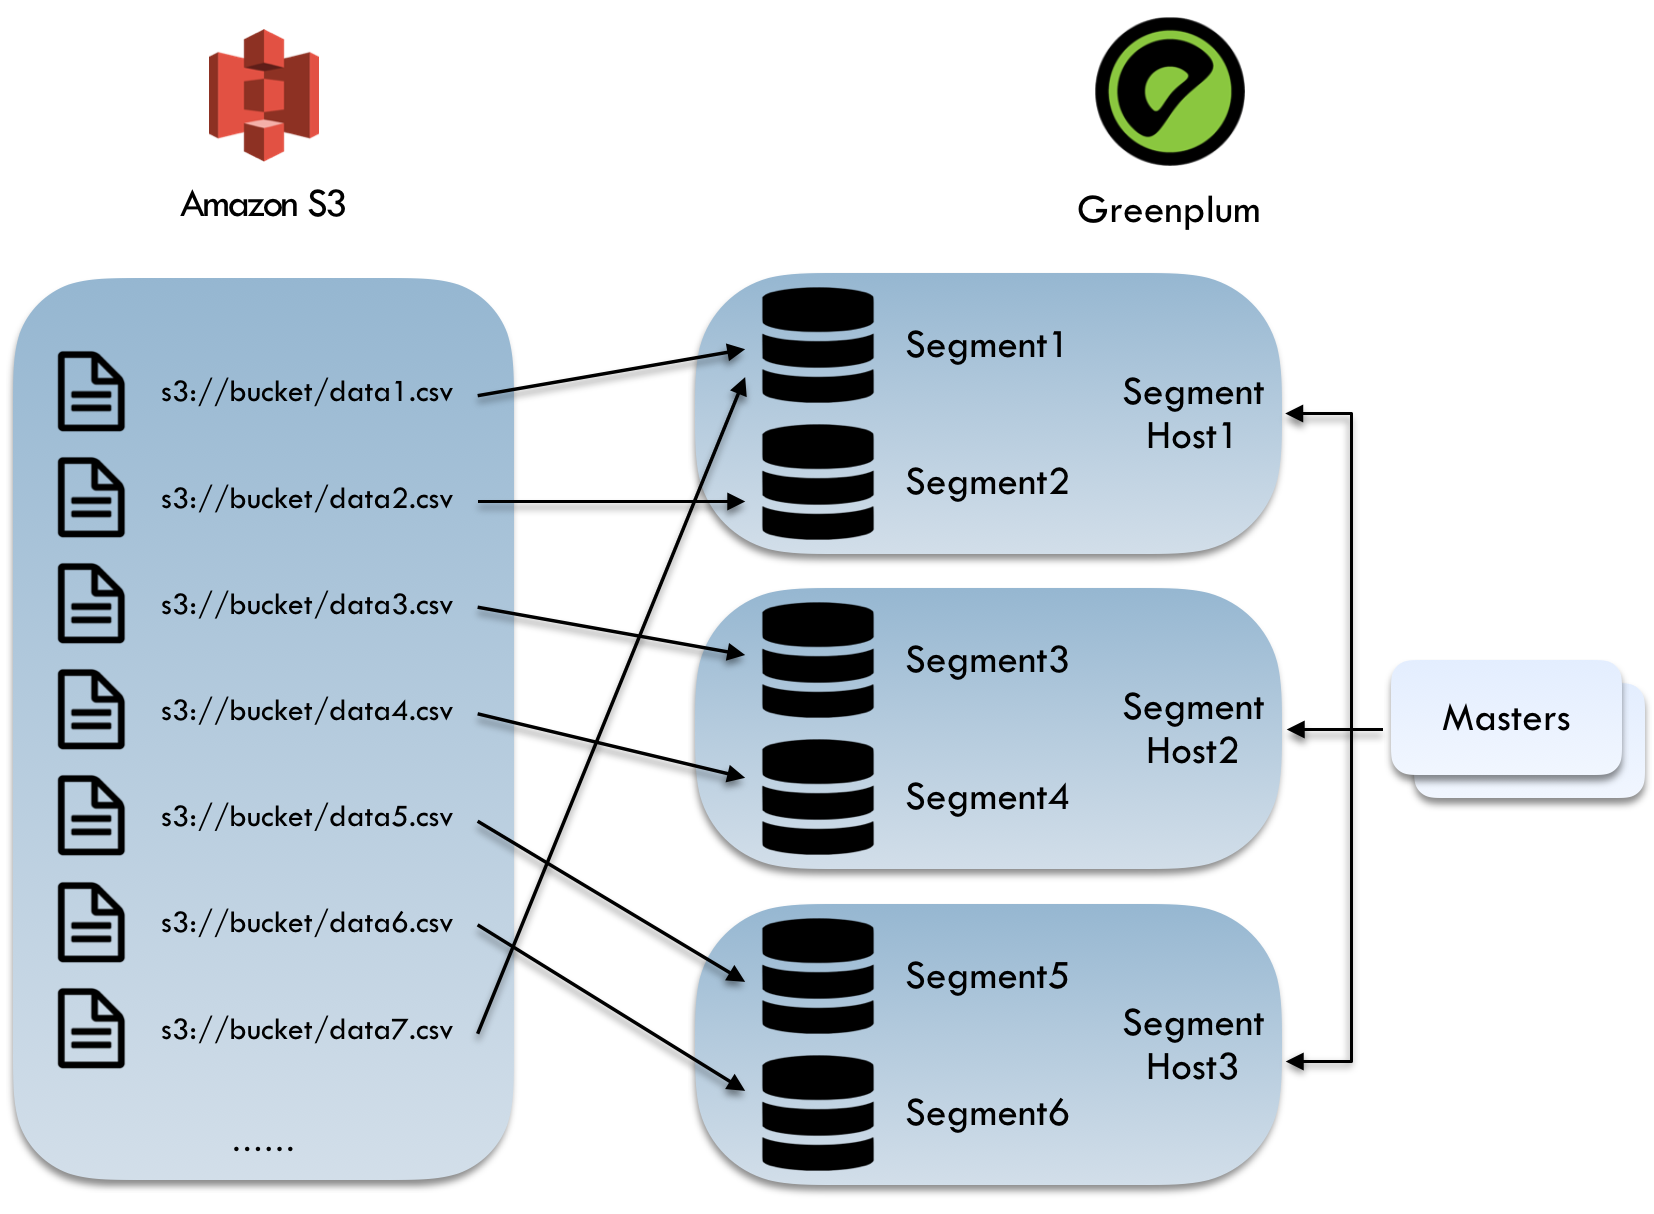 Greenplum working with Amazon S3